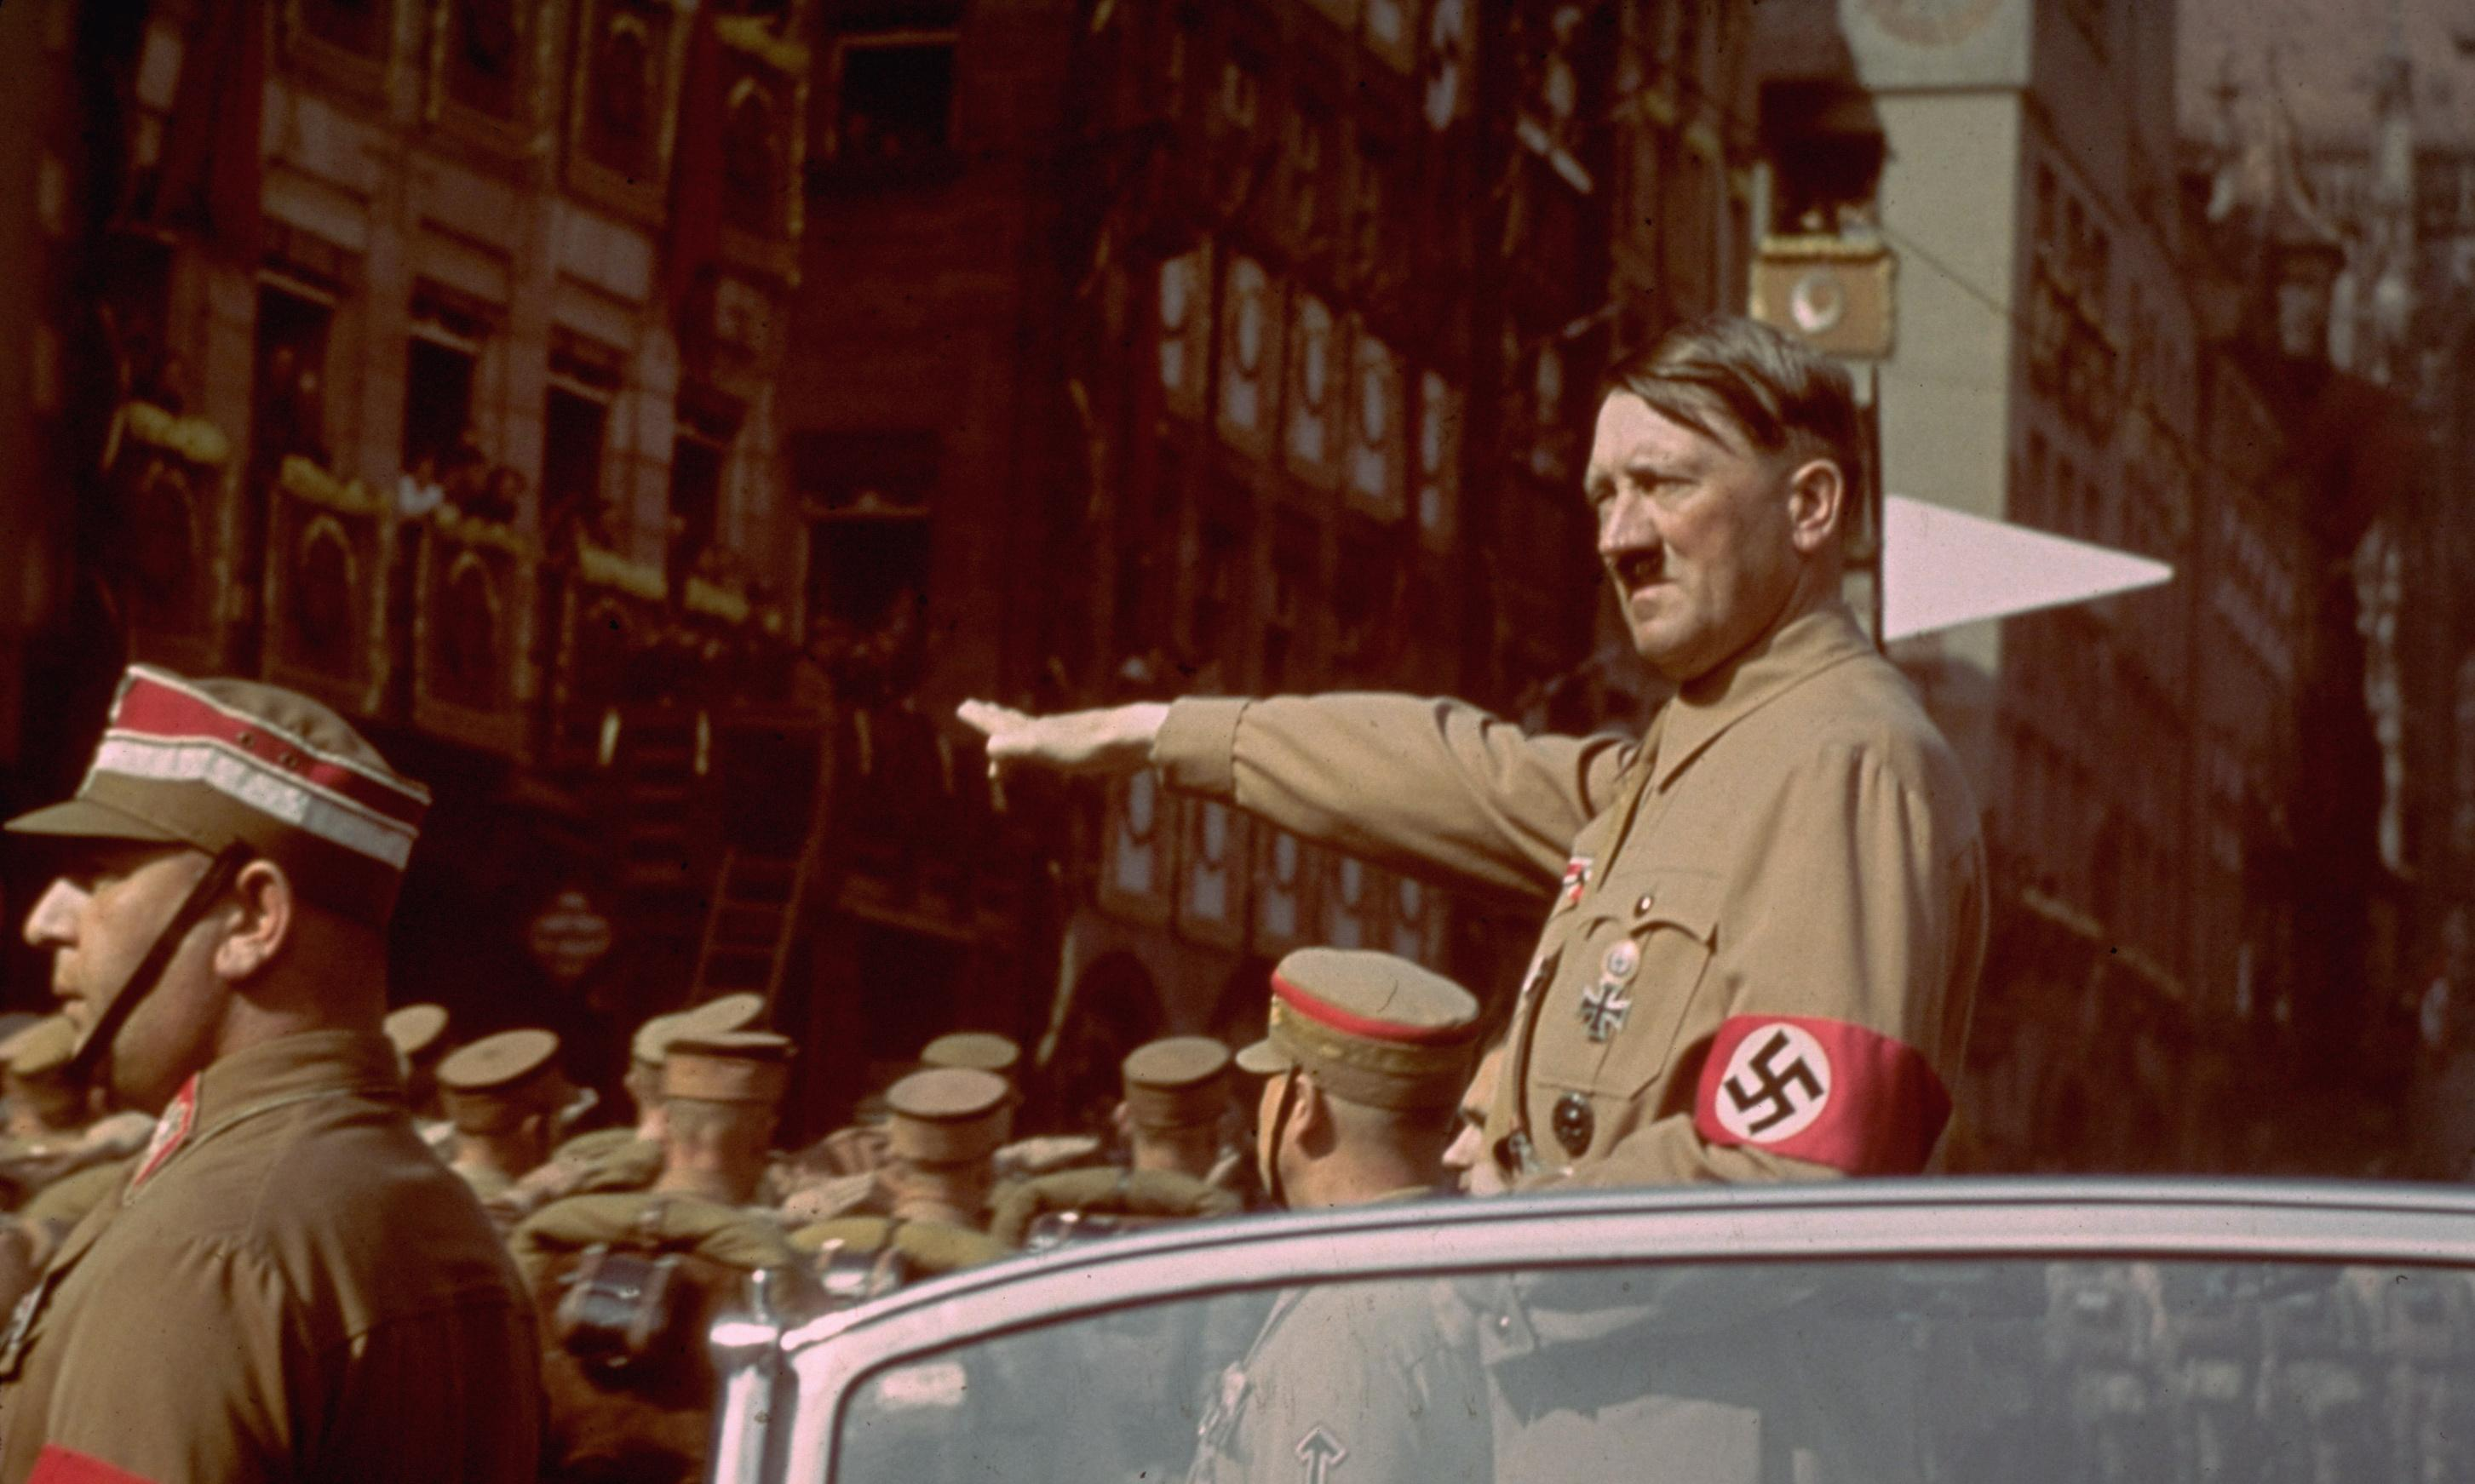 Hitler by Brendan Simms and Hitler by Peter Longerich review – problematic portraits